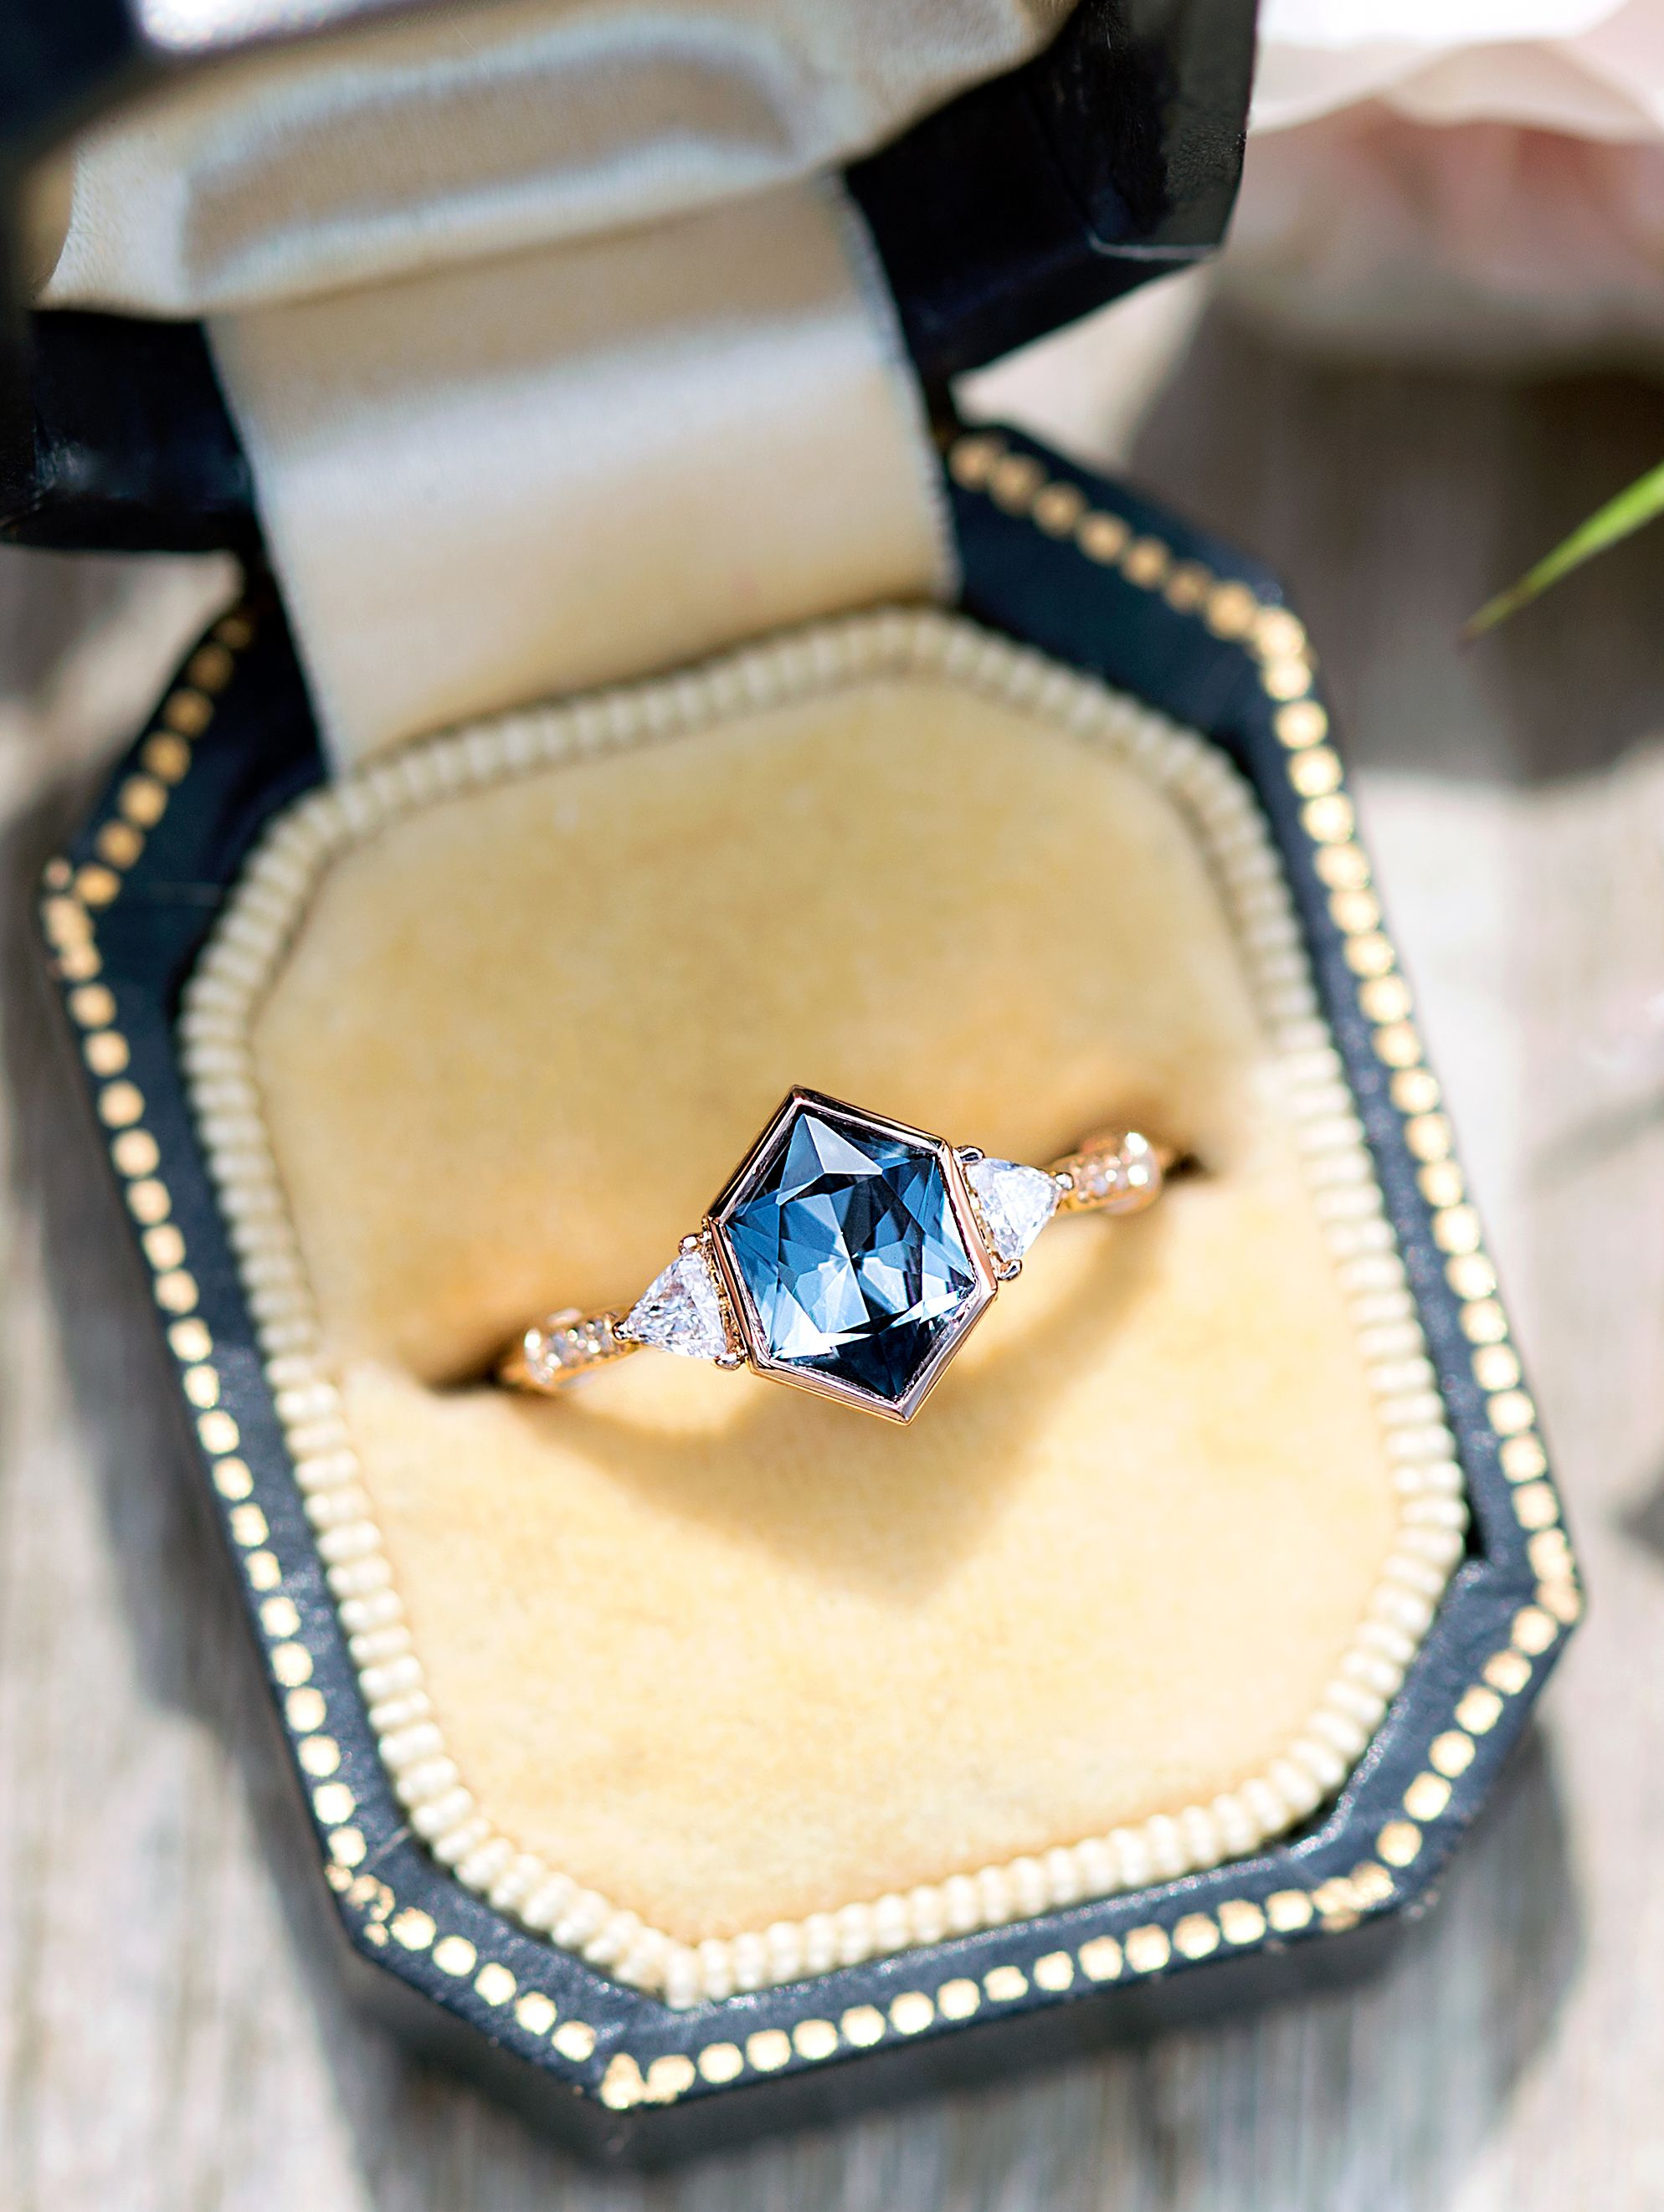 Hexagon All Natural Montana Sapphire Vida Ring Ever On The Quest For The Rarest Most Beautiful And Ethically Sourced Gem Dream Jewelry Jewelry Jewelry Rings